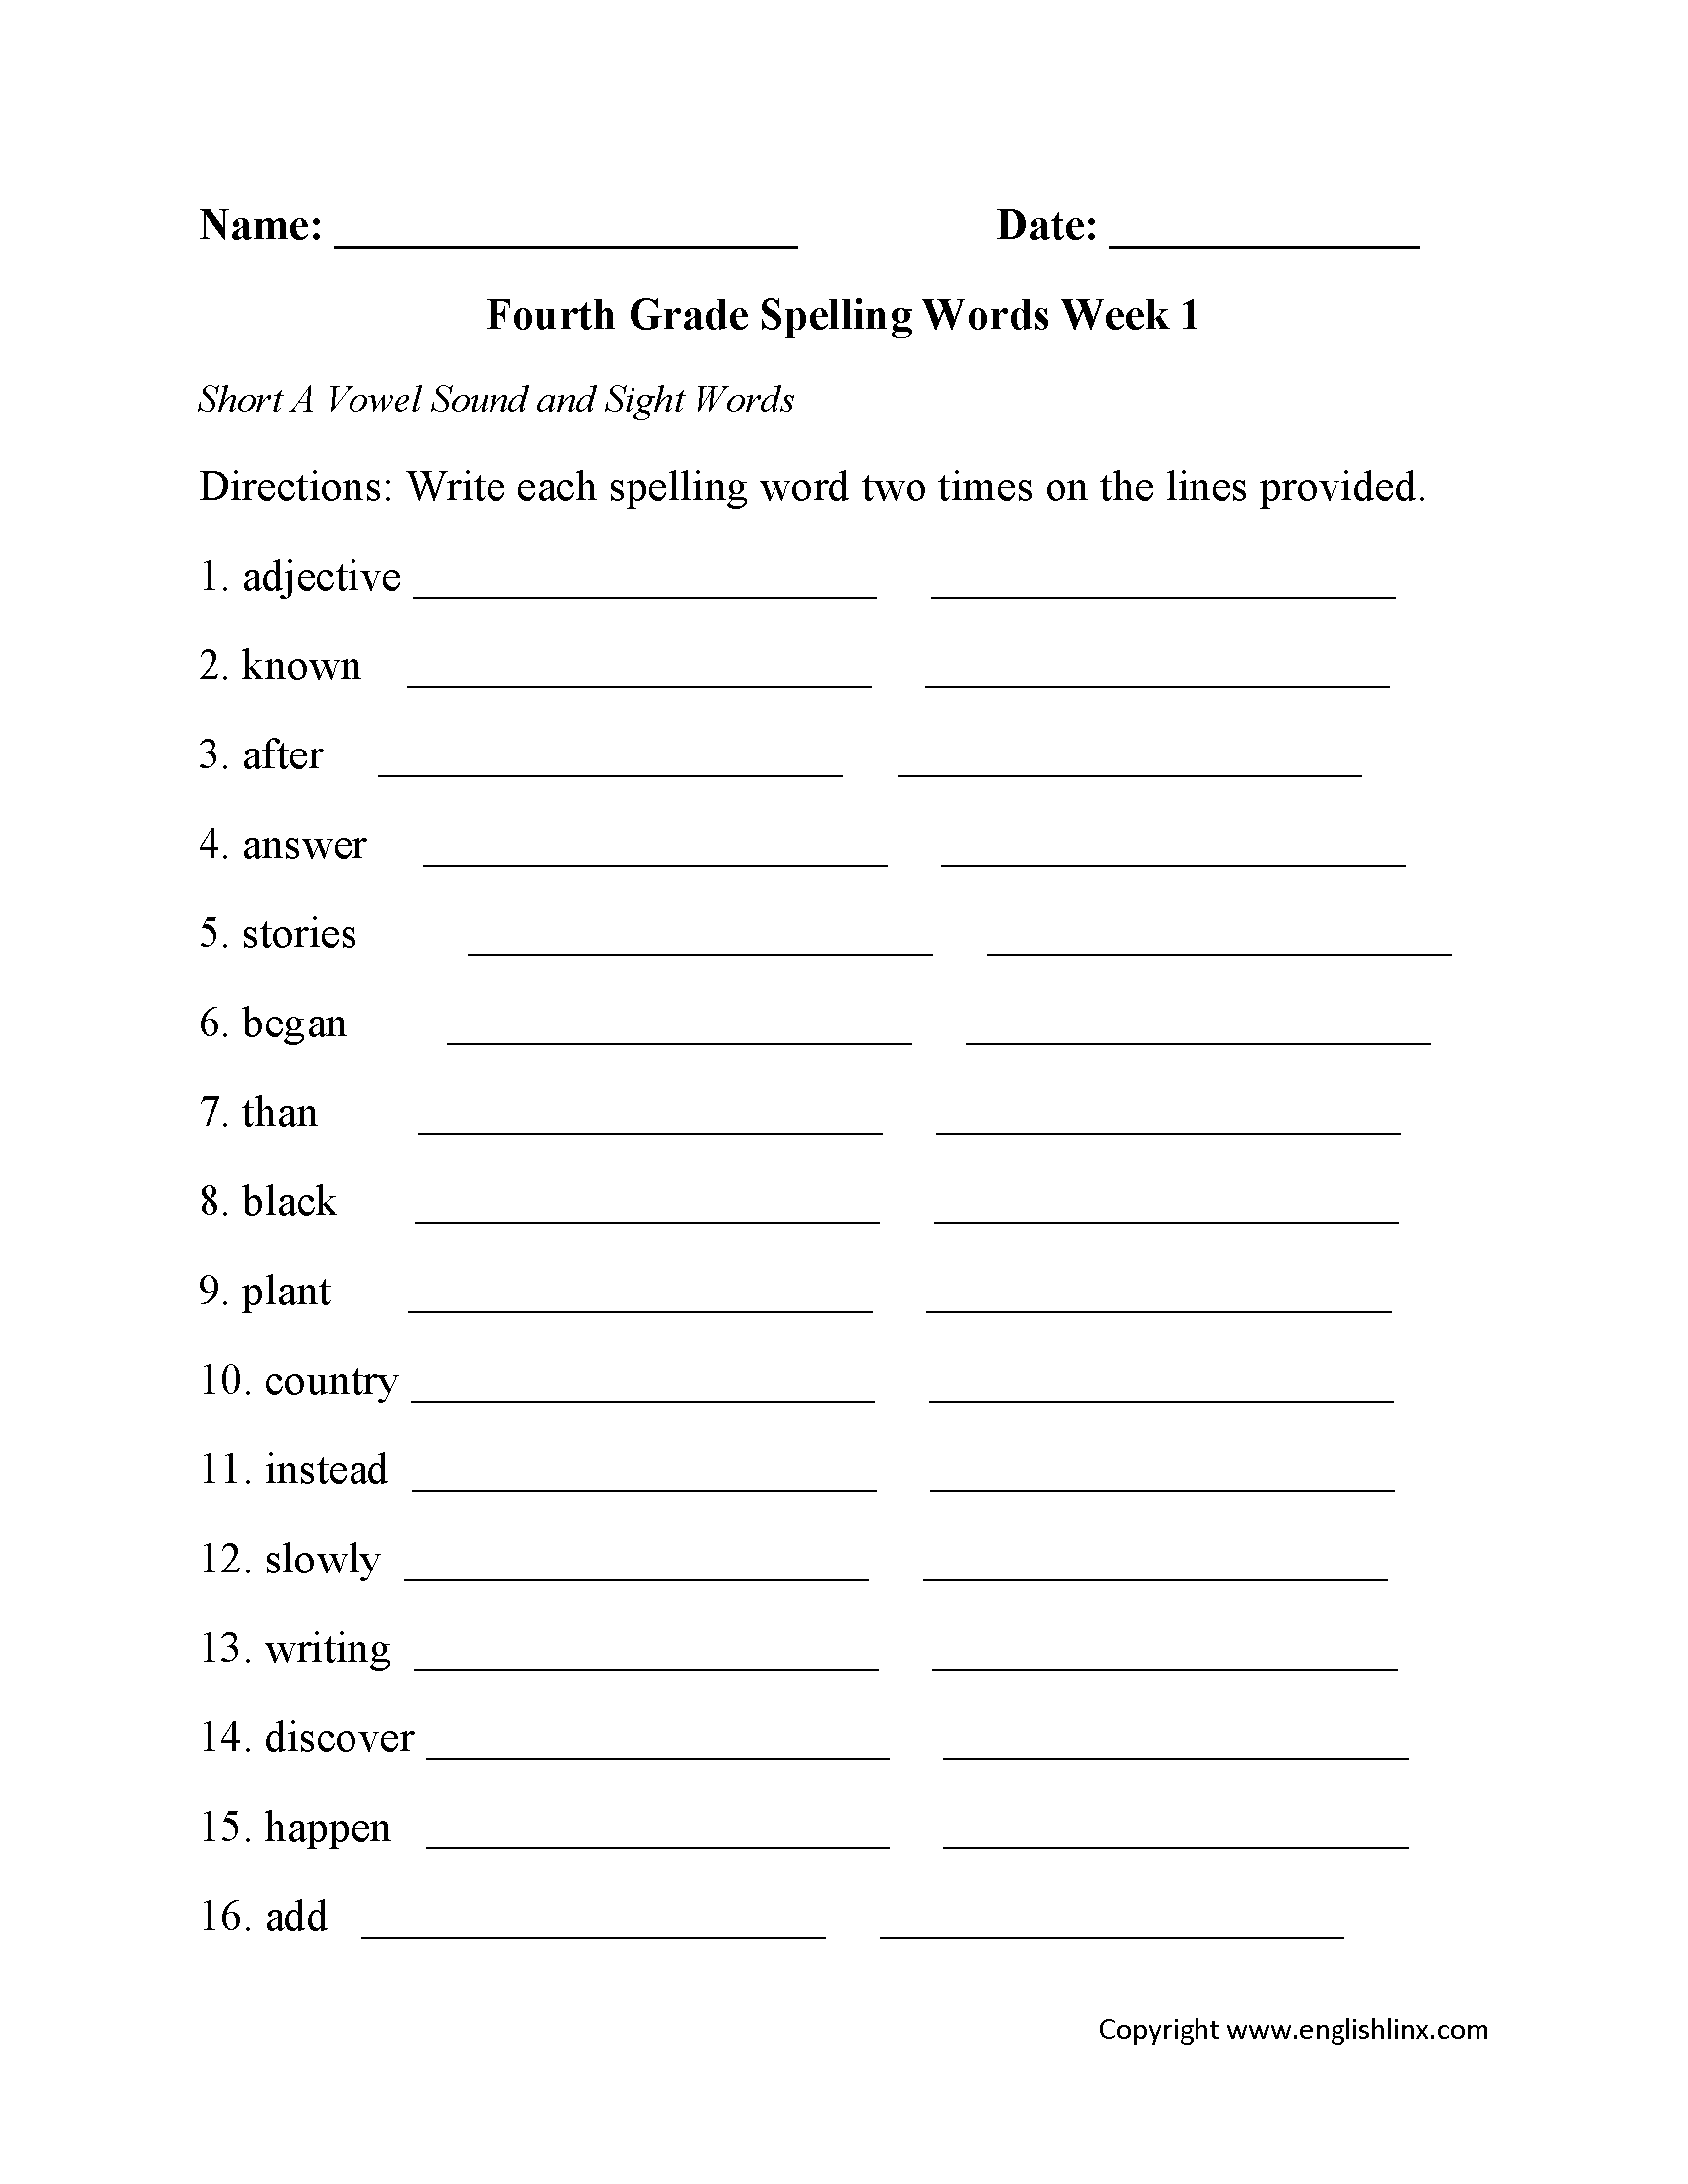 Worksheets Fourth Grade Vocabulary Worksheets spelling worksheets fourth grade worksheets